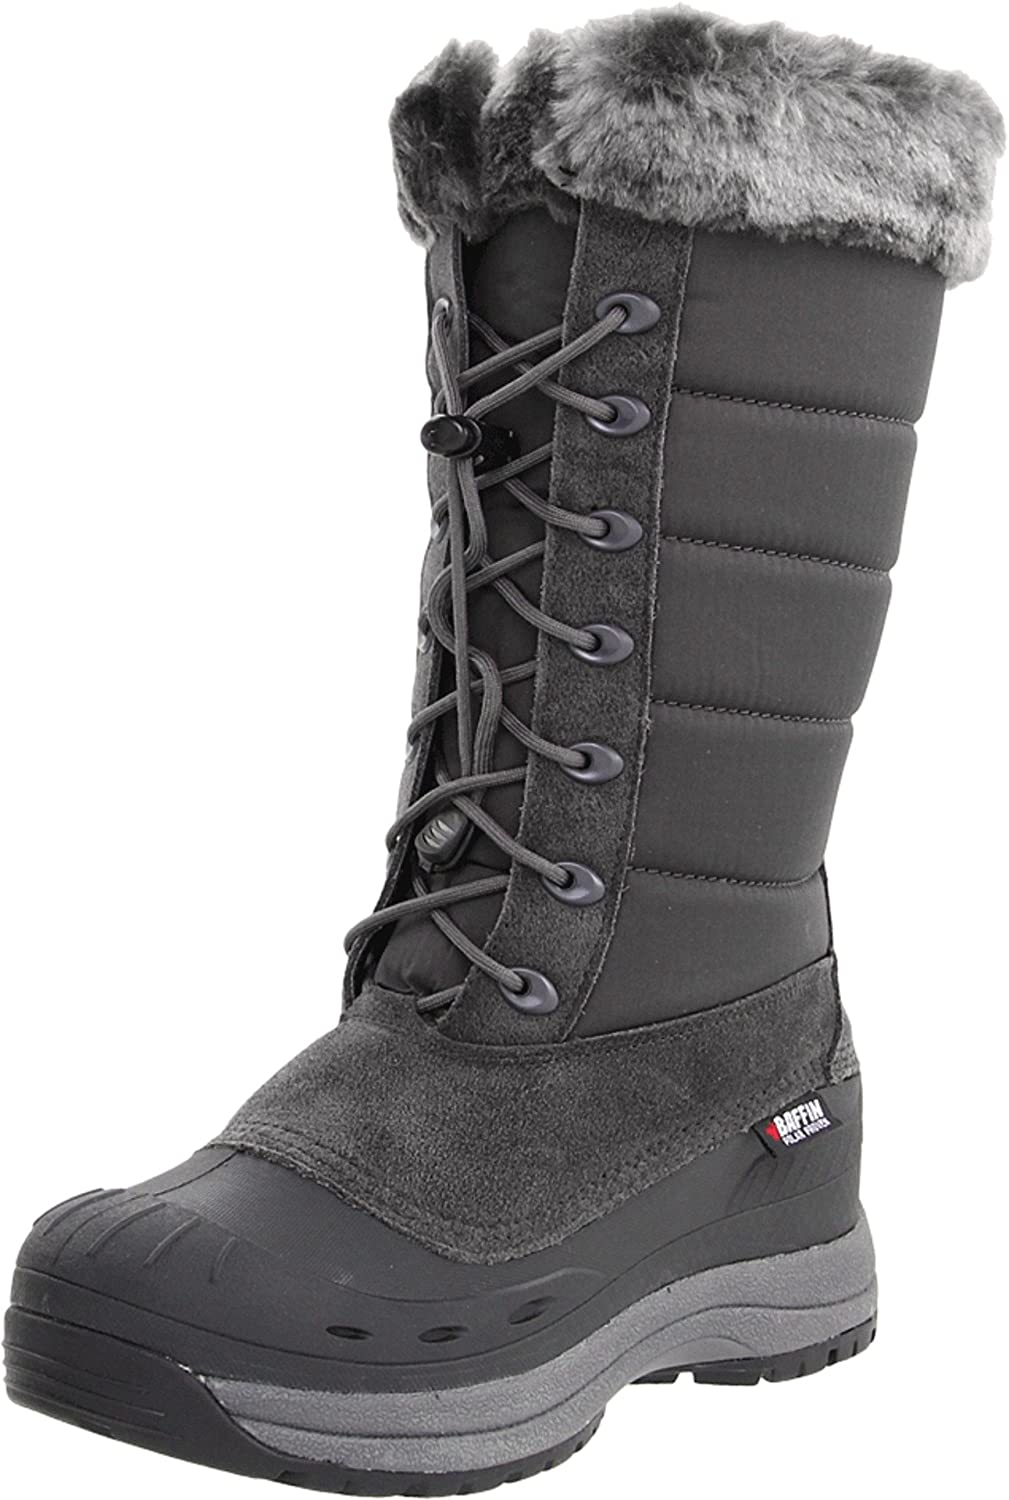 Baffin Women's Iceland Snow Boot B004W5NLRS 8 B(M) US|Grey